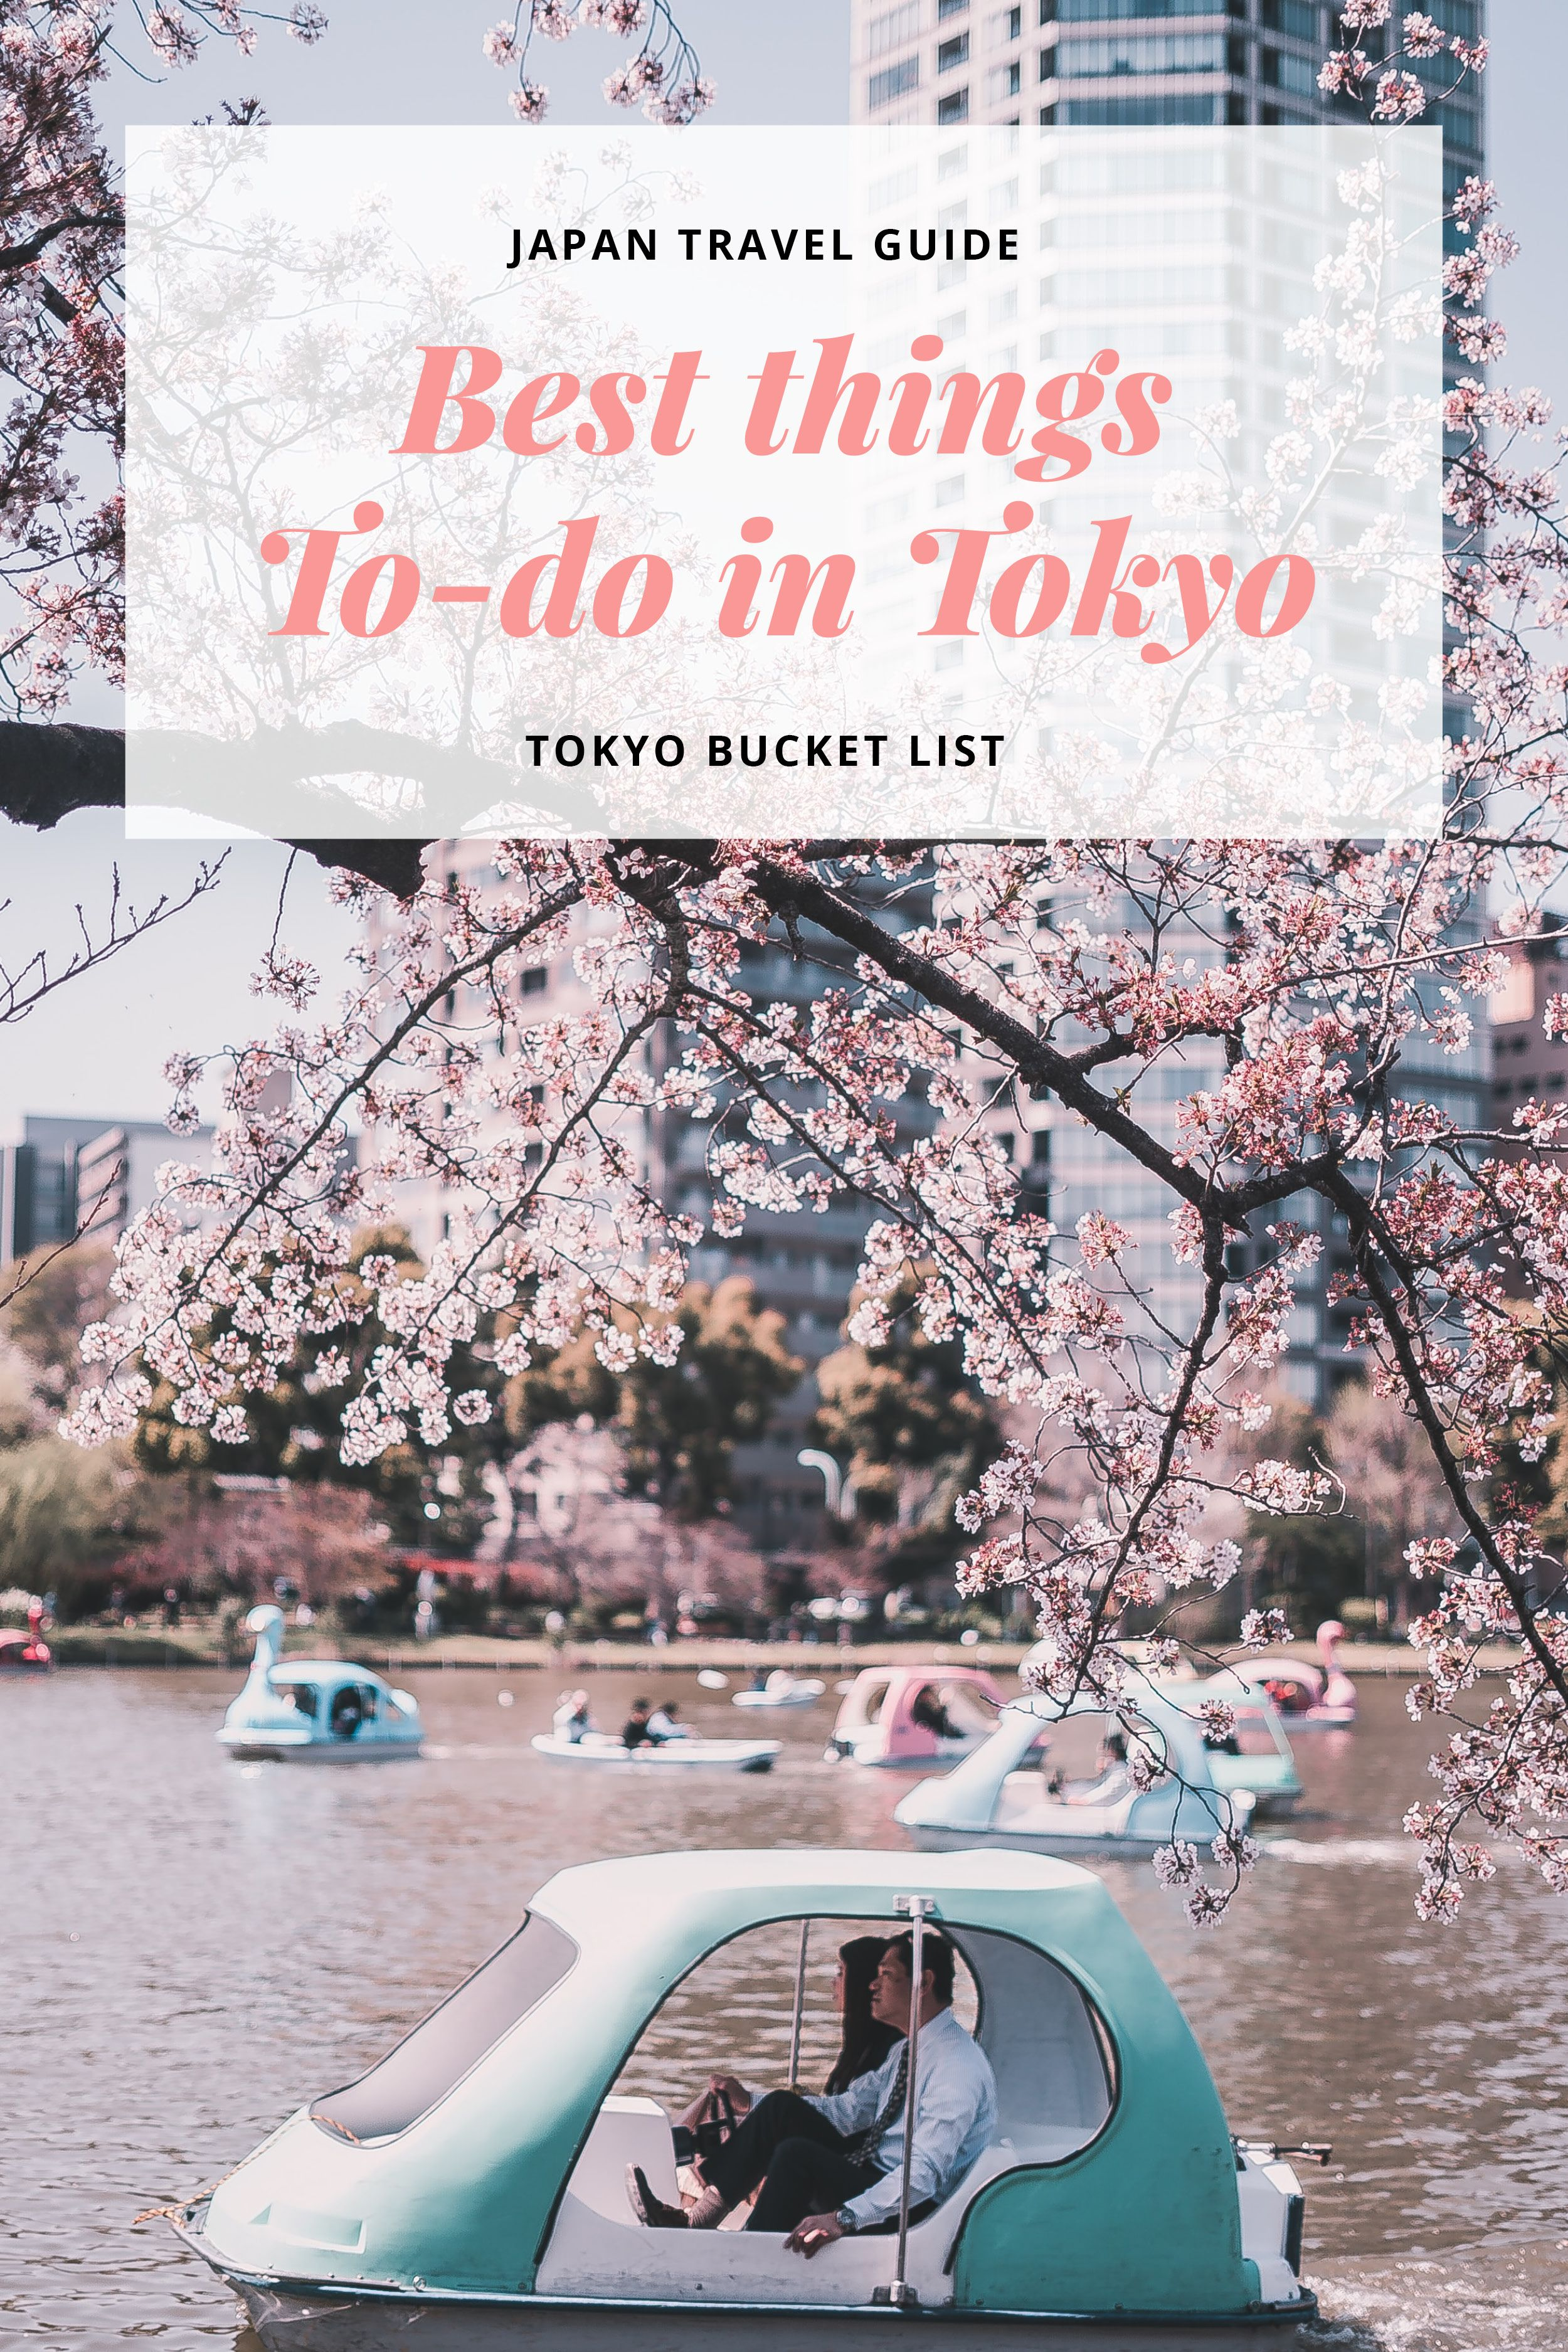 Best Things-To-Do in Tokyo - Japan Travel Guide